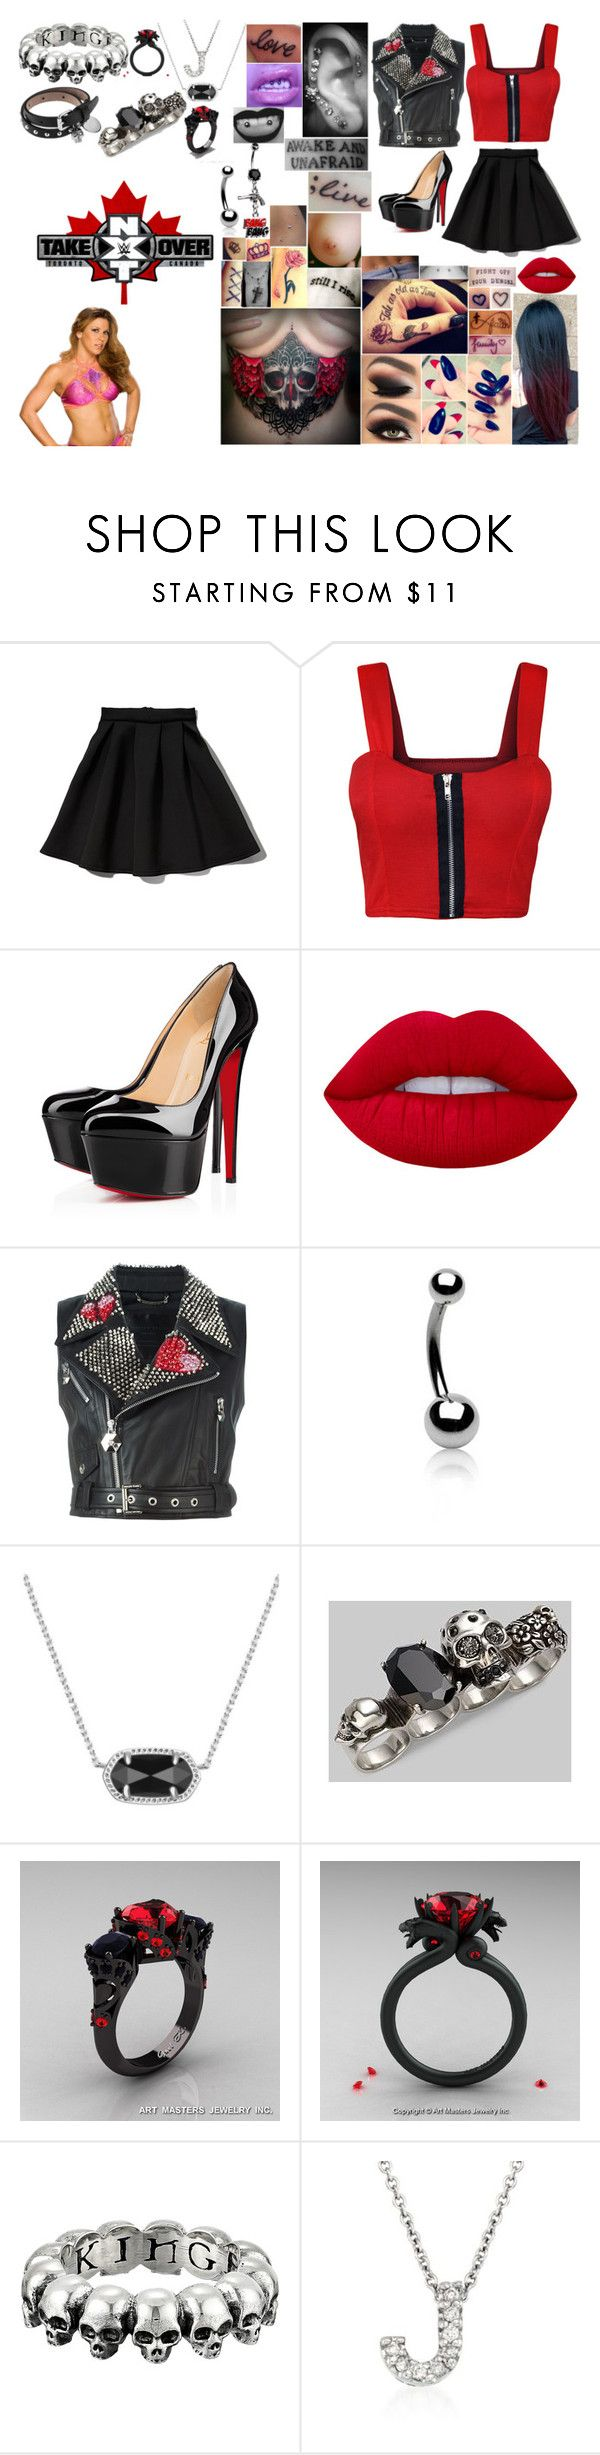 """Walking Mickie James Out To Her Match at TakeOver: Toronto"" by belabmilagres ❤ liked on Polyvore featuring Abercrombie & Fitch, WearAll, WWE, Christian Louboutin, Lime Crime, Lauren Conrad, Philipp Plein, Disney, Bling Jewelry and Kendra Scott"